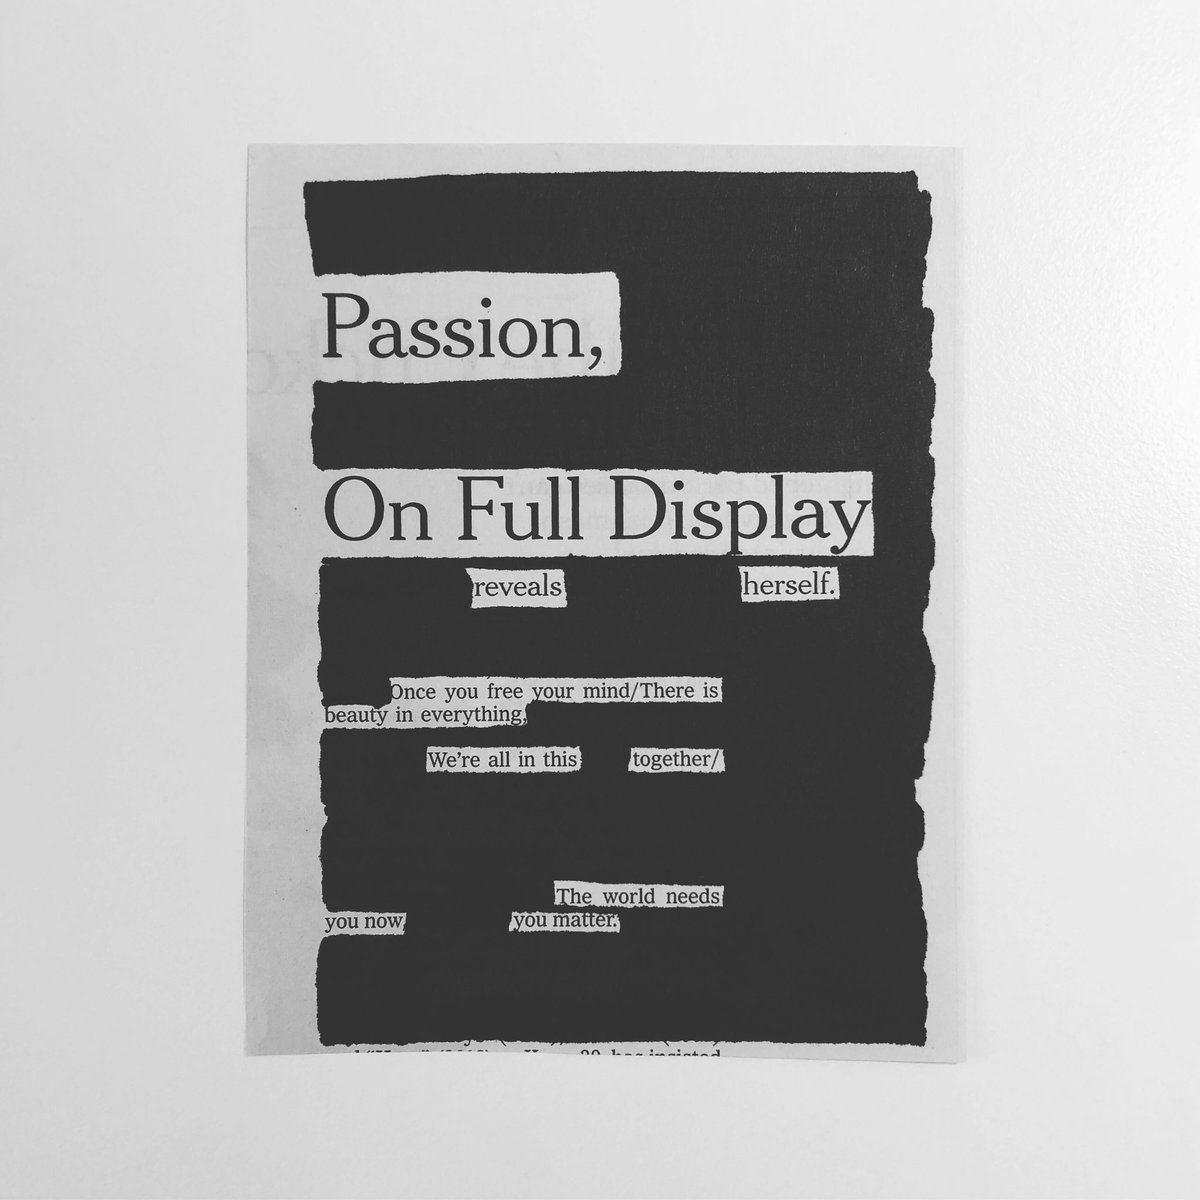 Passion, On Full Display reveals herself.  Once you free your mind/There is beauty in everything. We're all in this together/ The world needs you now          you matter.  #blackoutpoetry #blackoutpoem #quarantineart #blackandwhite #passion #newspaperblackout #aliciakeys #music https://t.co/SSXy5HFBov